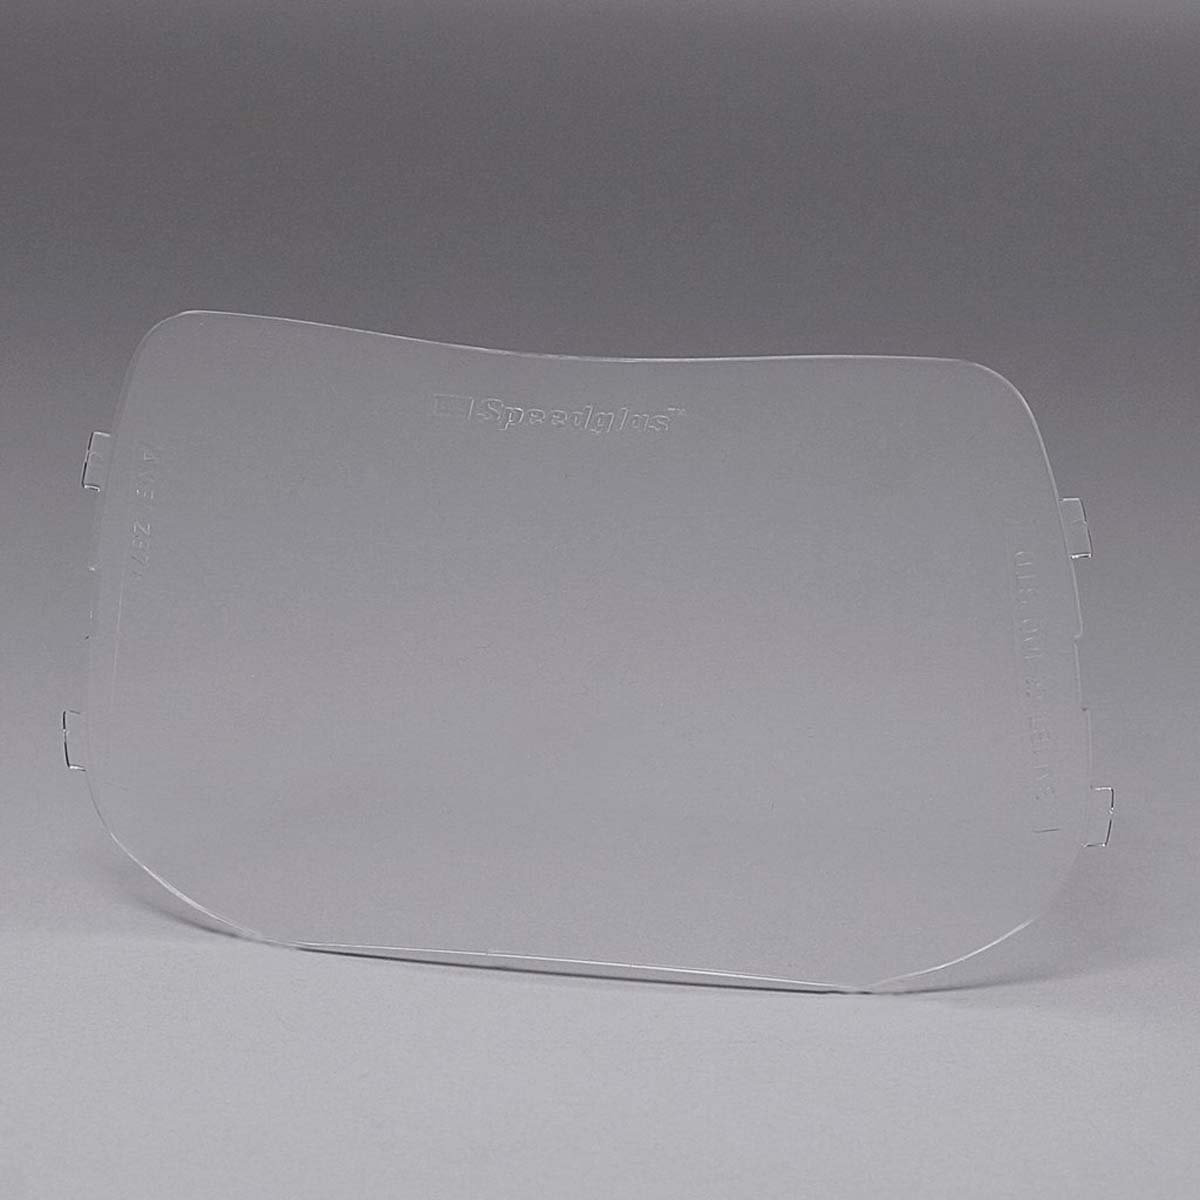 "3Mâ""¢ Speedglasâ""¢ Outside Protection Plate 100 07-0200-51/37243(AAD), Standard"